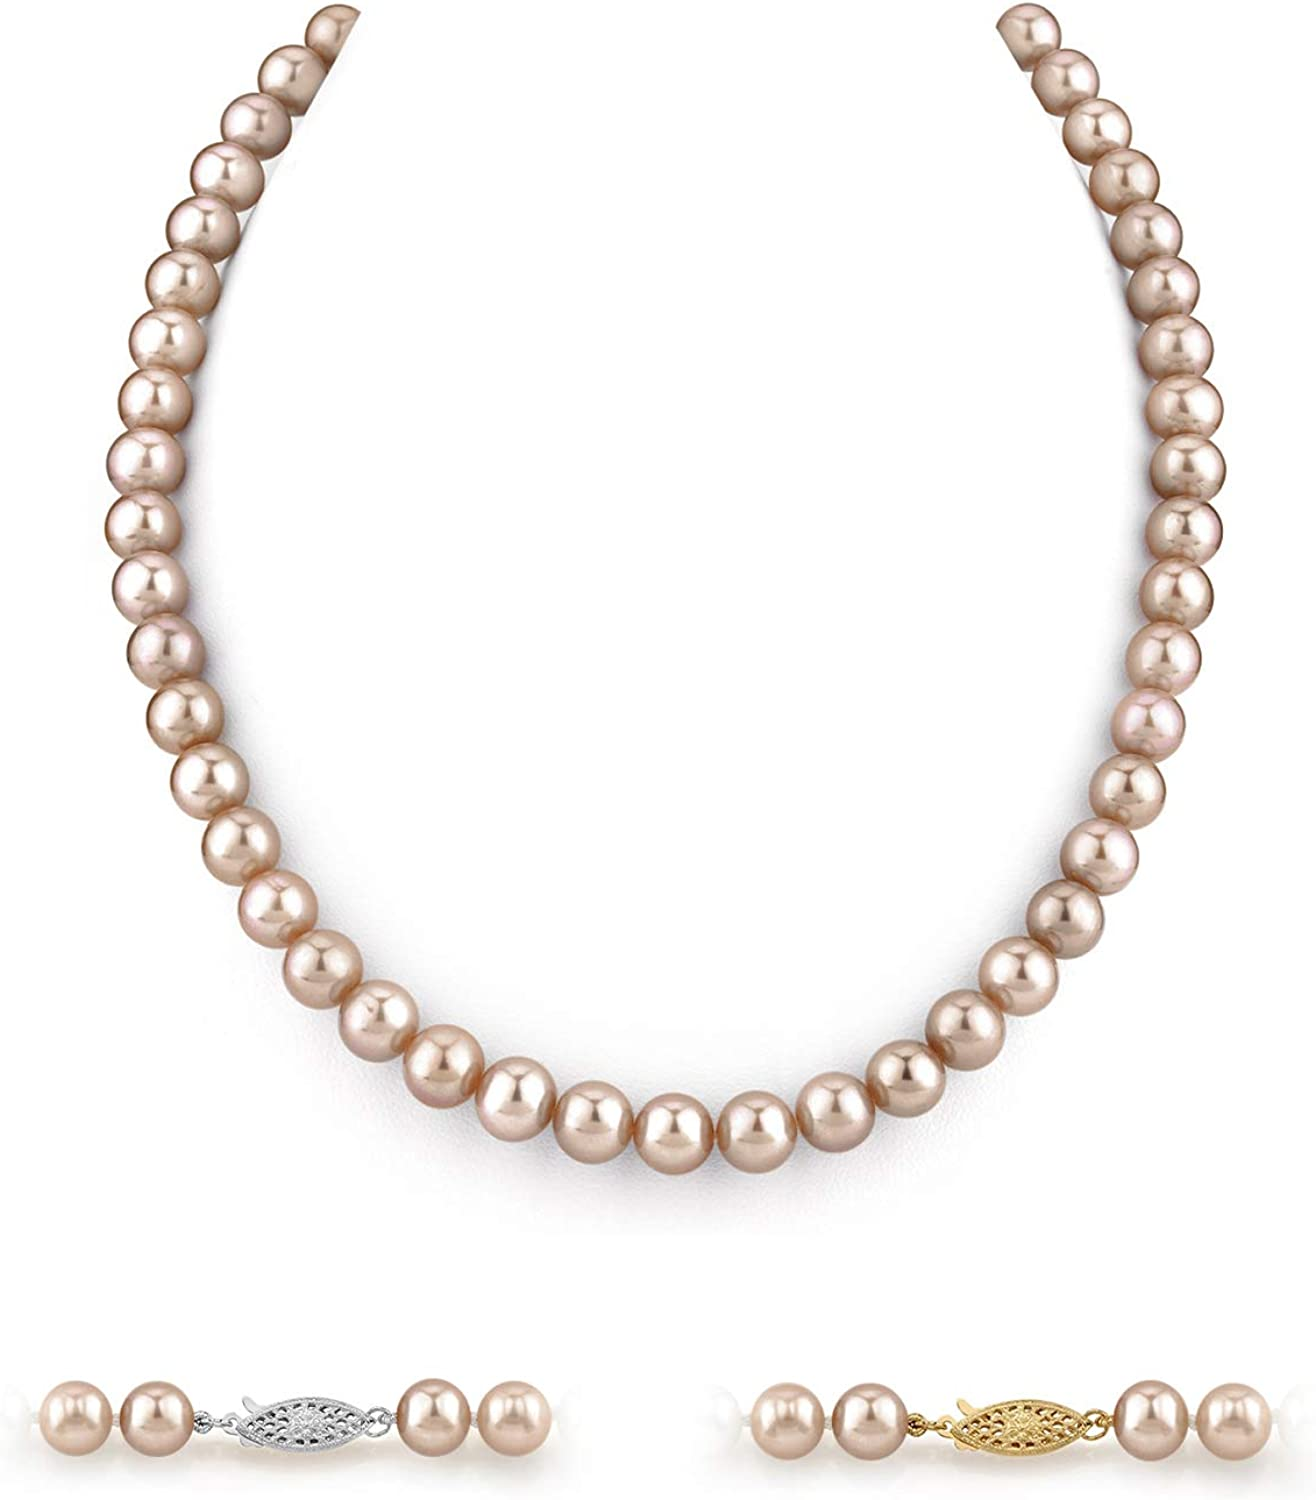 THE PEARL SOURCE 14K Gold 7-8mm AAAA Quality Pink Freshwater Cultured Pearl Necklace for Women in 18